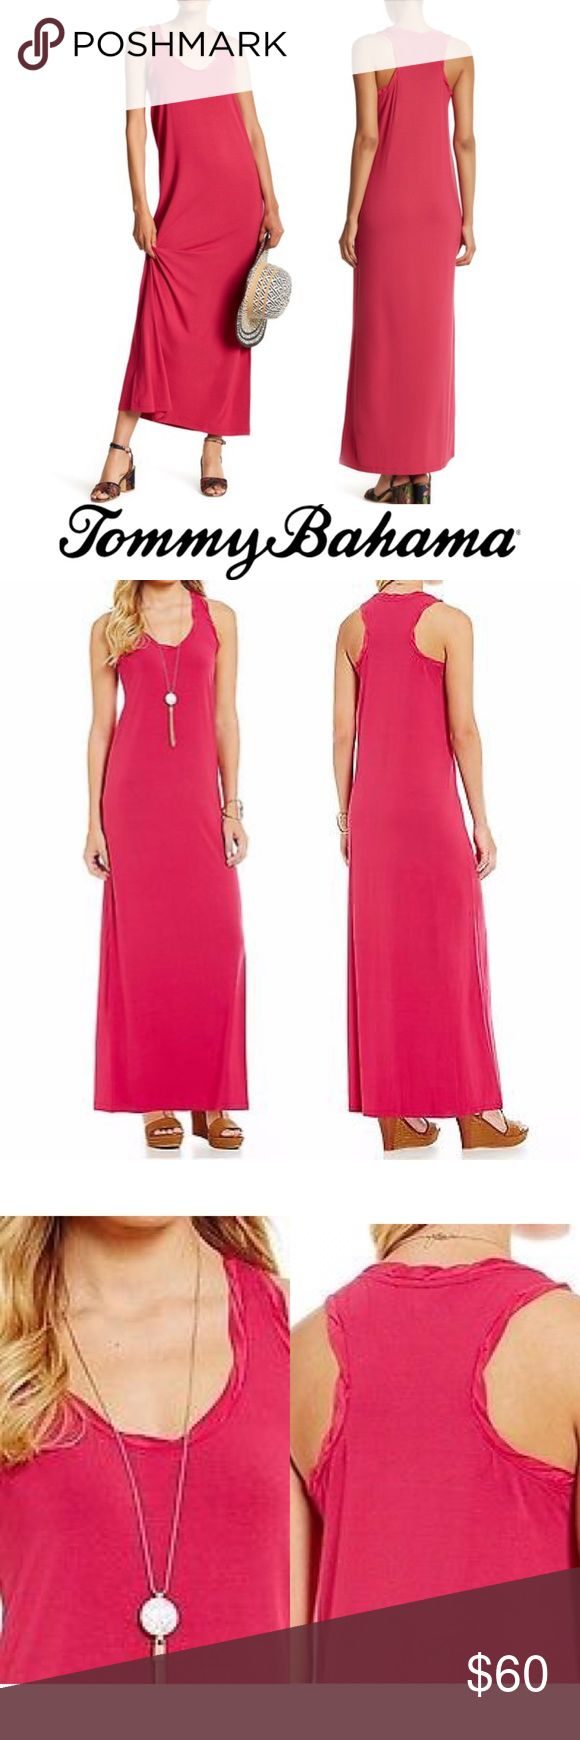 Tambour Silk Trimmed Racerback Maxi Dress New with tags, Tommy Bahama breezy 'Tambour' summer Maxi dress.  Gorgeous fuschia color called 'Pink Papaya.'  Scoopneck and Racerback trimmed in 100% silk. Retails for $148.  Versatile and easy to wear.  Would be great poolside, beachside, on vacation or simply walking around town.  Ships next day. Tommy Bahama Dresses Maxi